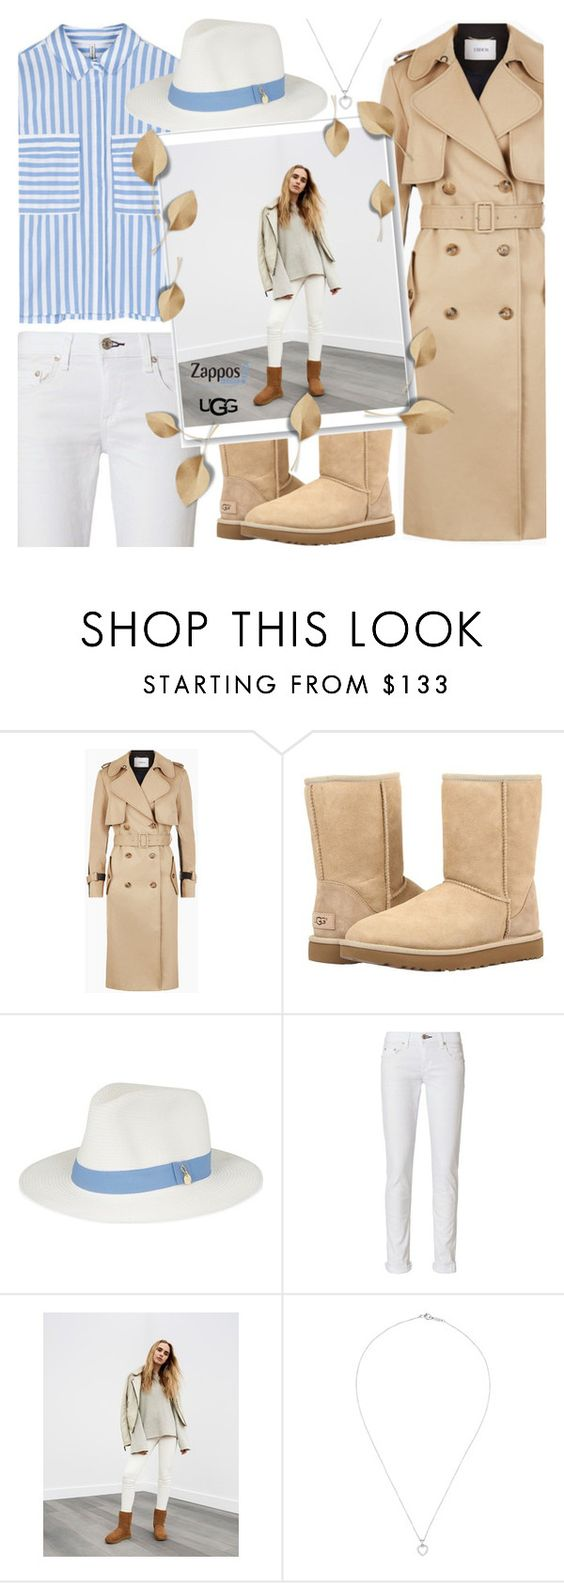 """The Icon Perfected: UGG Classic II Contest Entry"" by anamarija00 ❤ liked on Polyvore featuring UGG, Melissa Odabash, rag & bone, Tiffany & Co., ugg and contestentry"